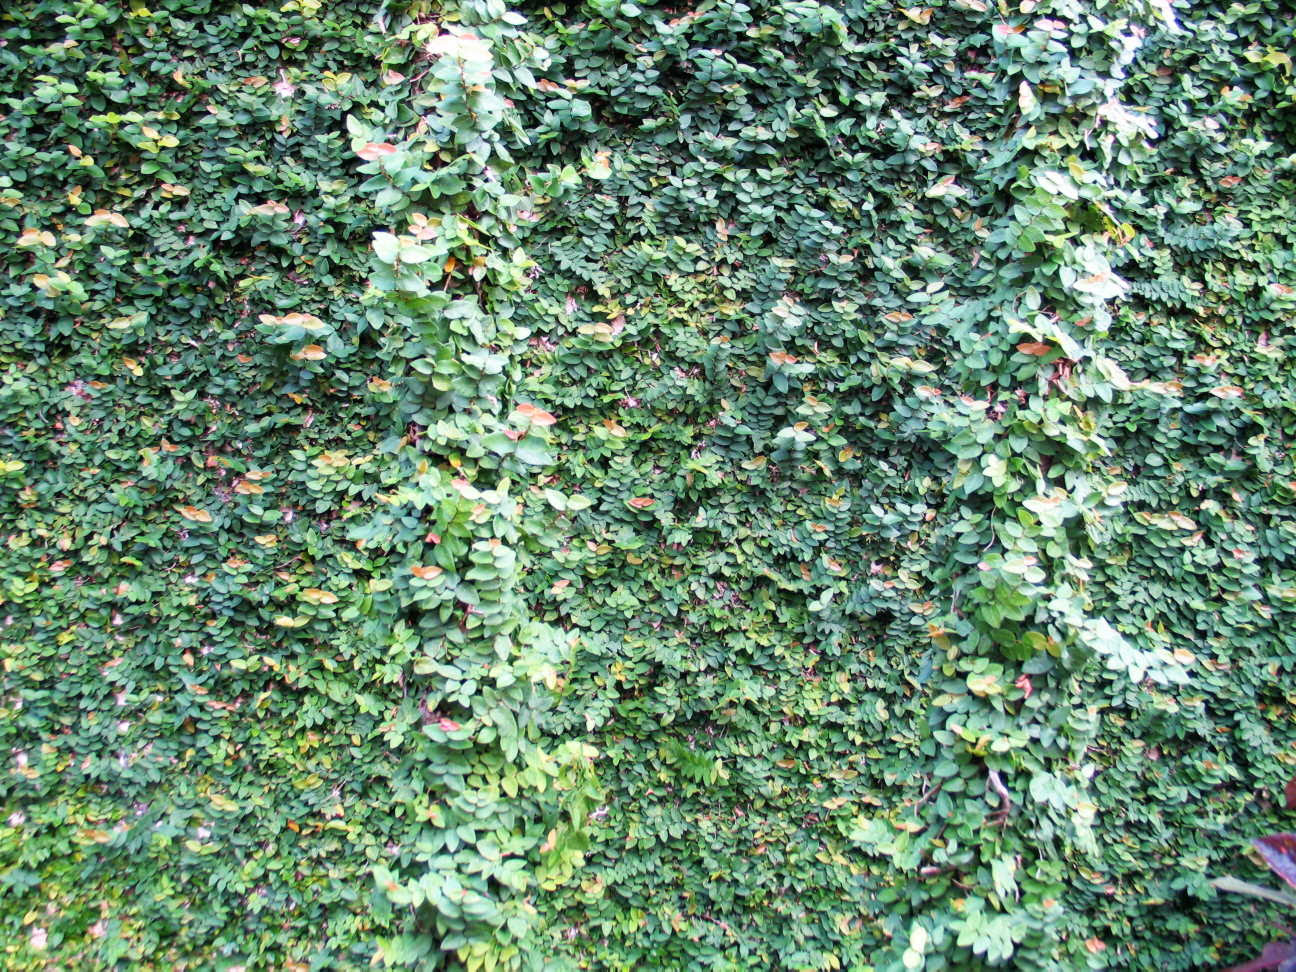 Wall of vines